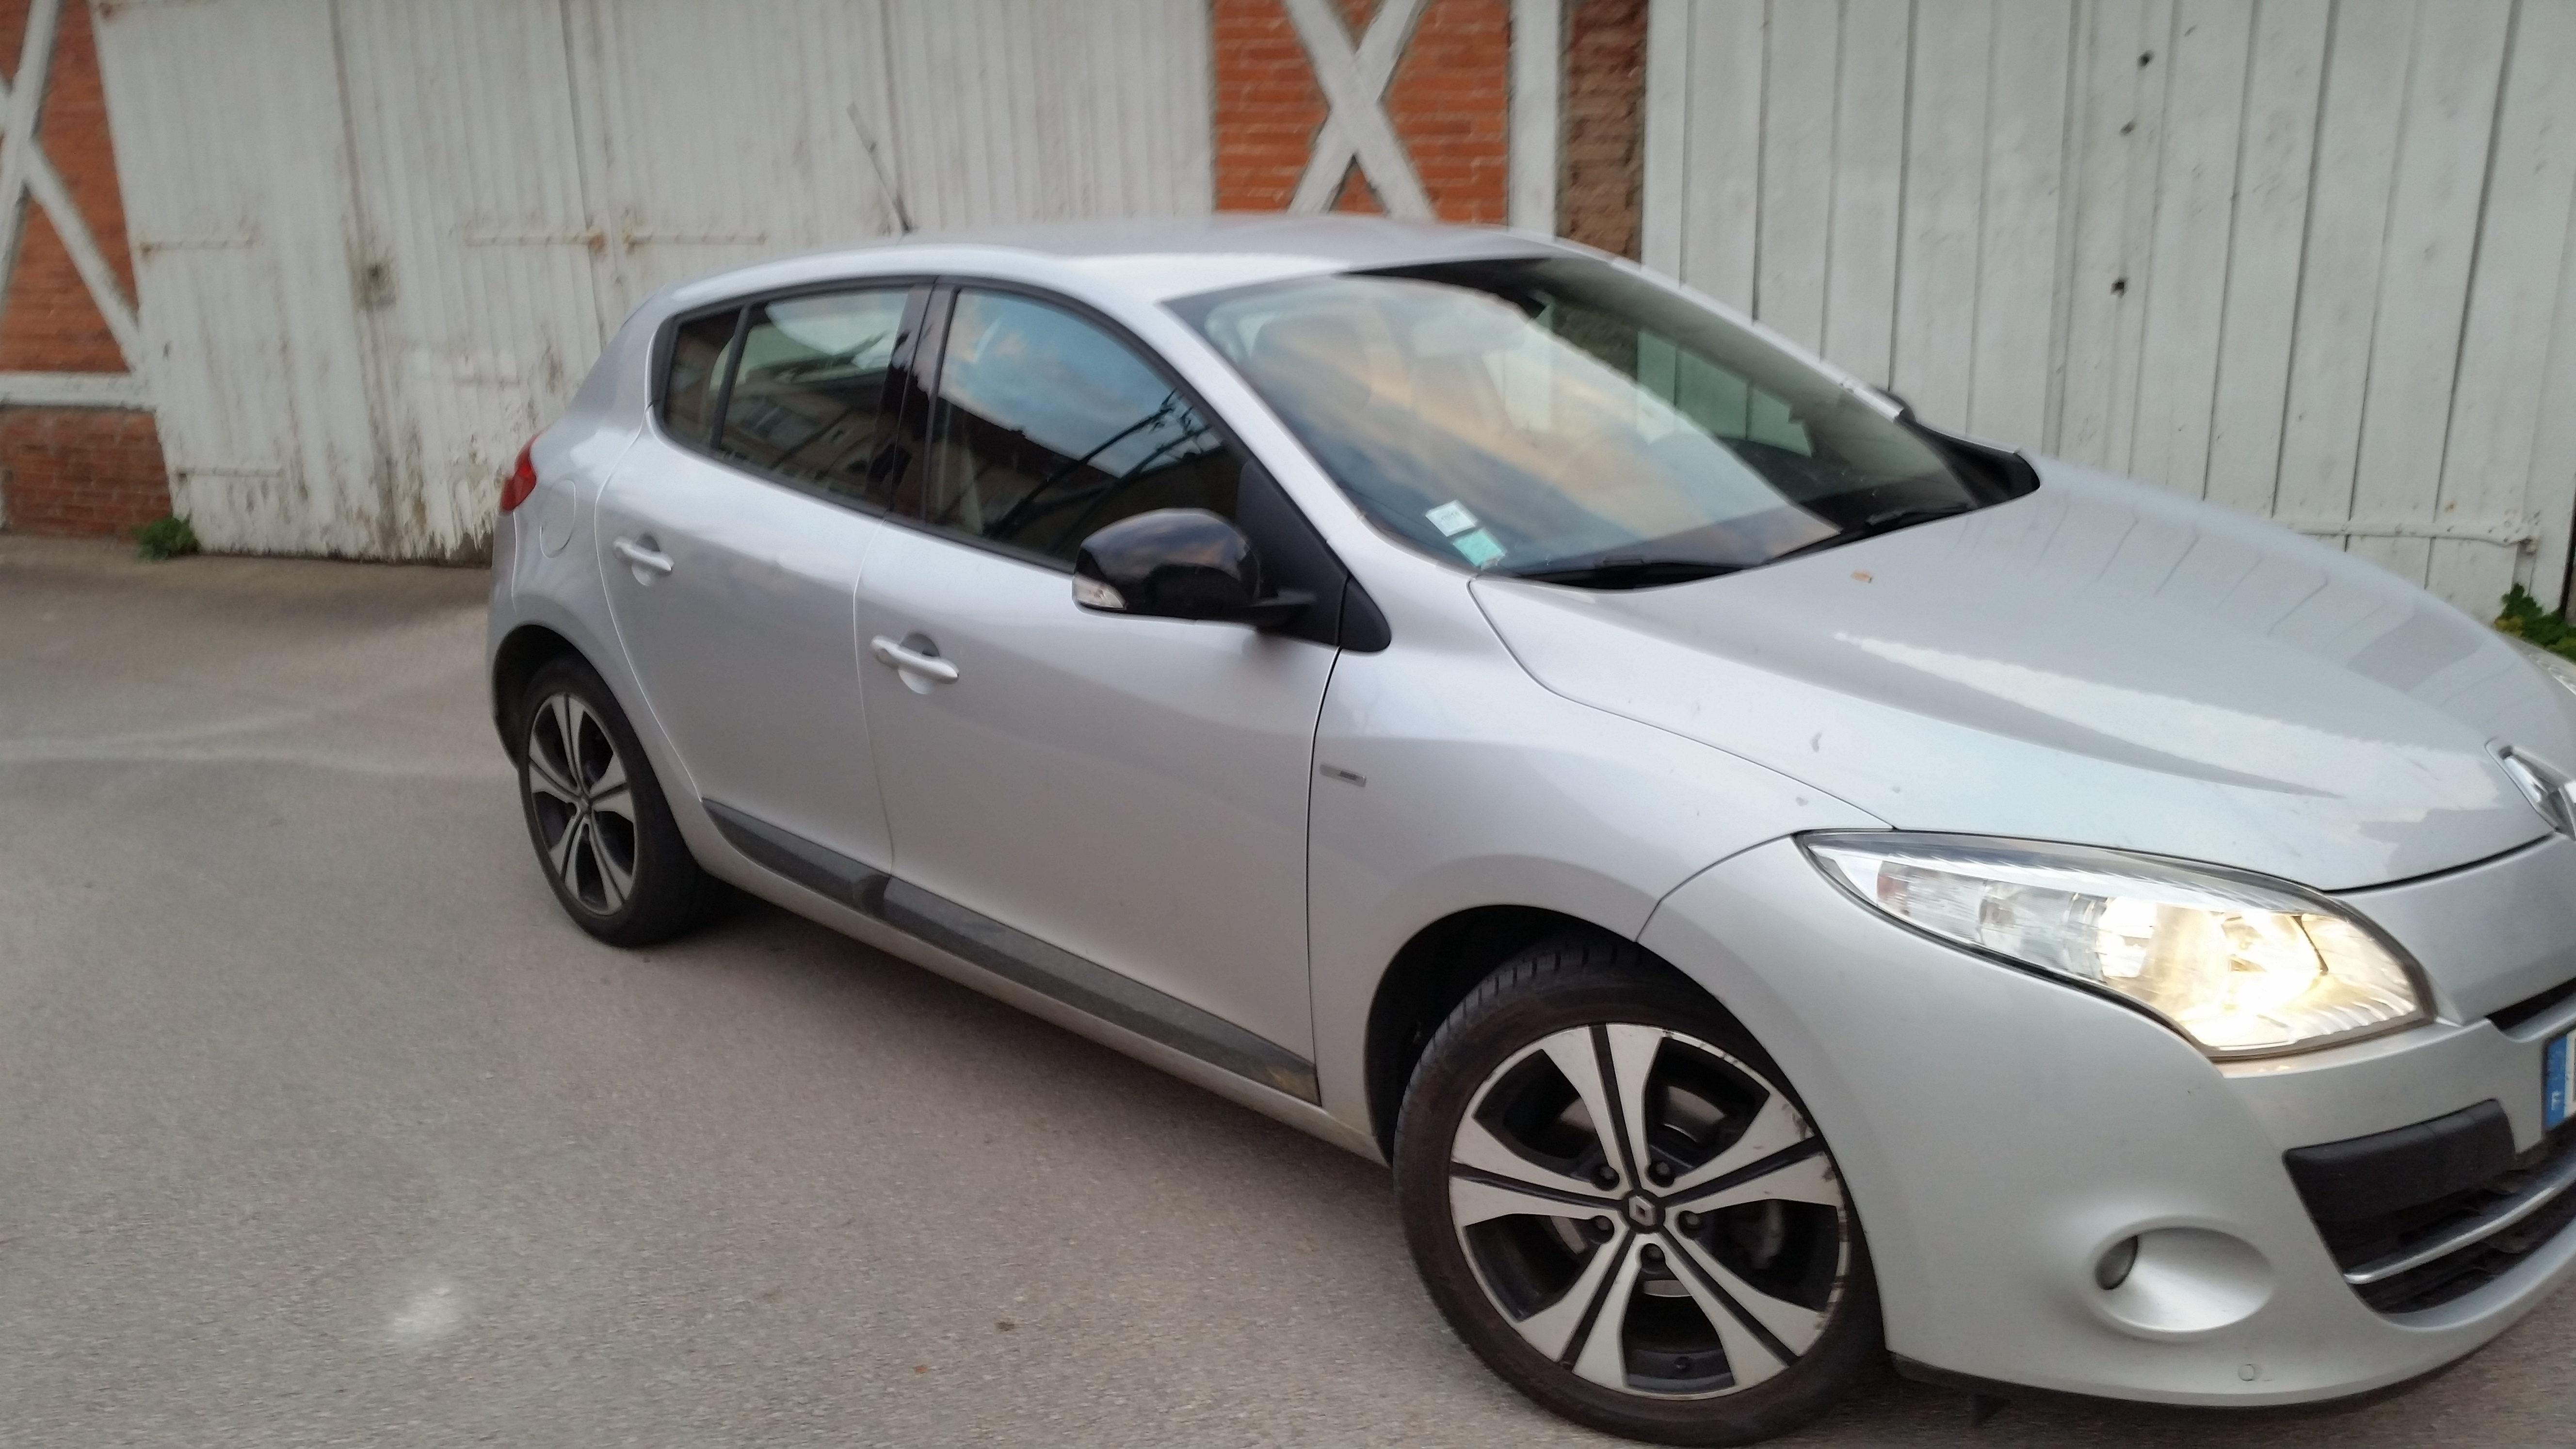 location voiture angouleme